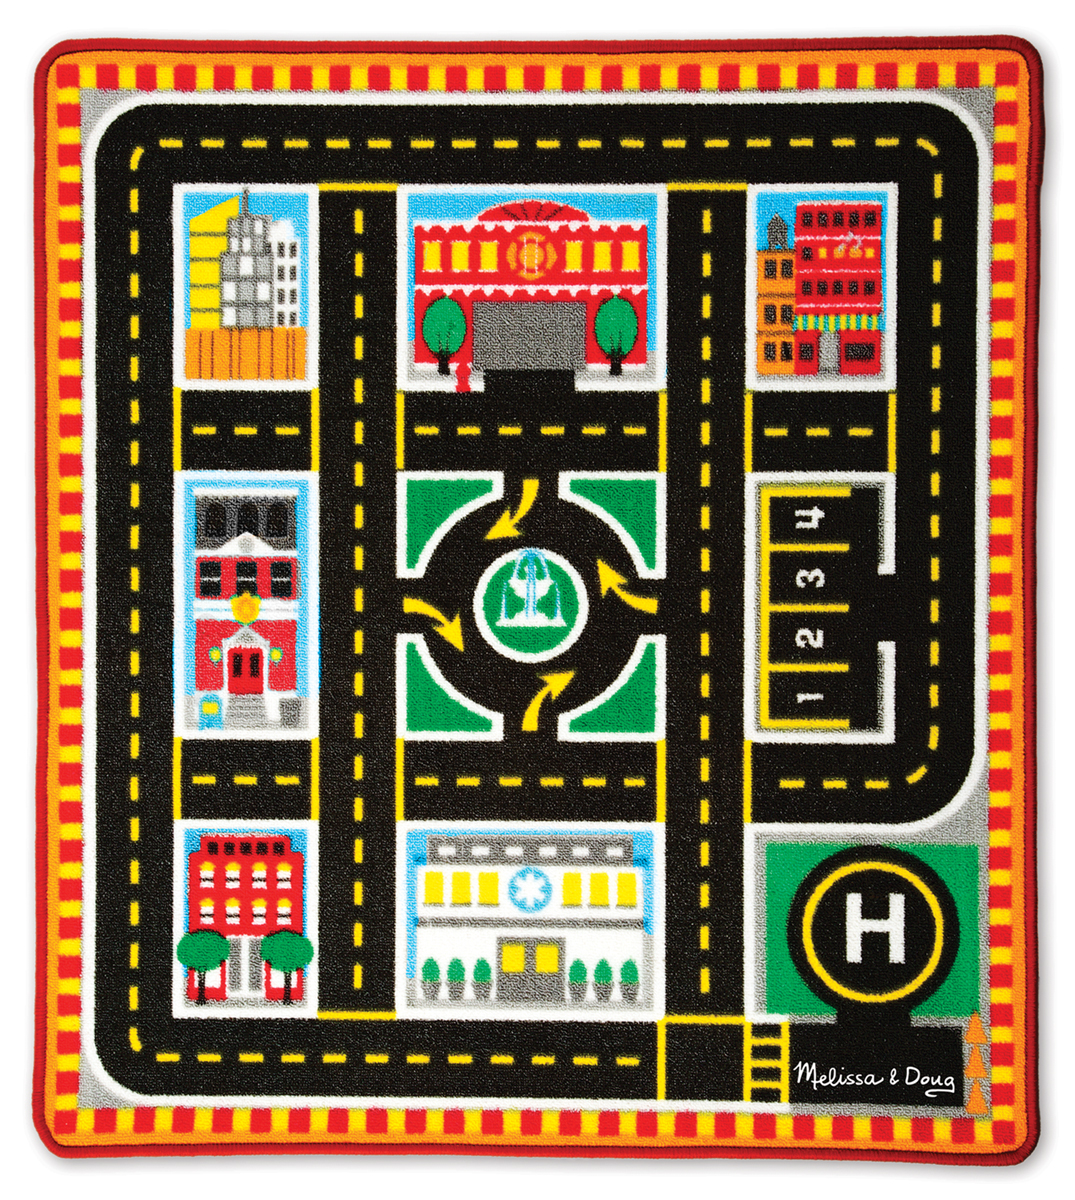 Melissa & Doug Round The City Rescue Rug & Vehicle Set 9406